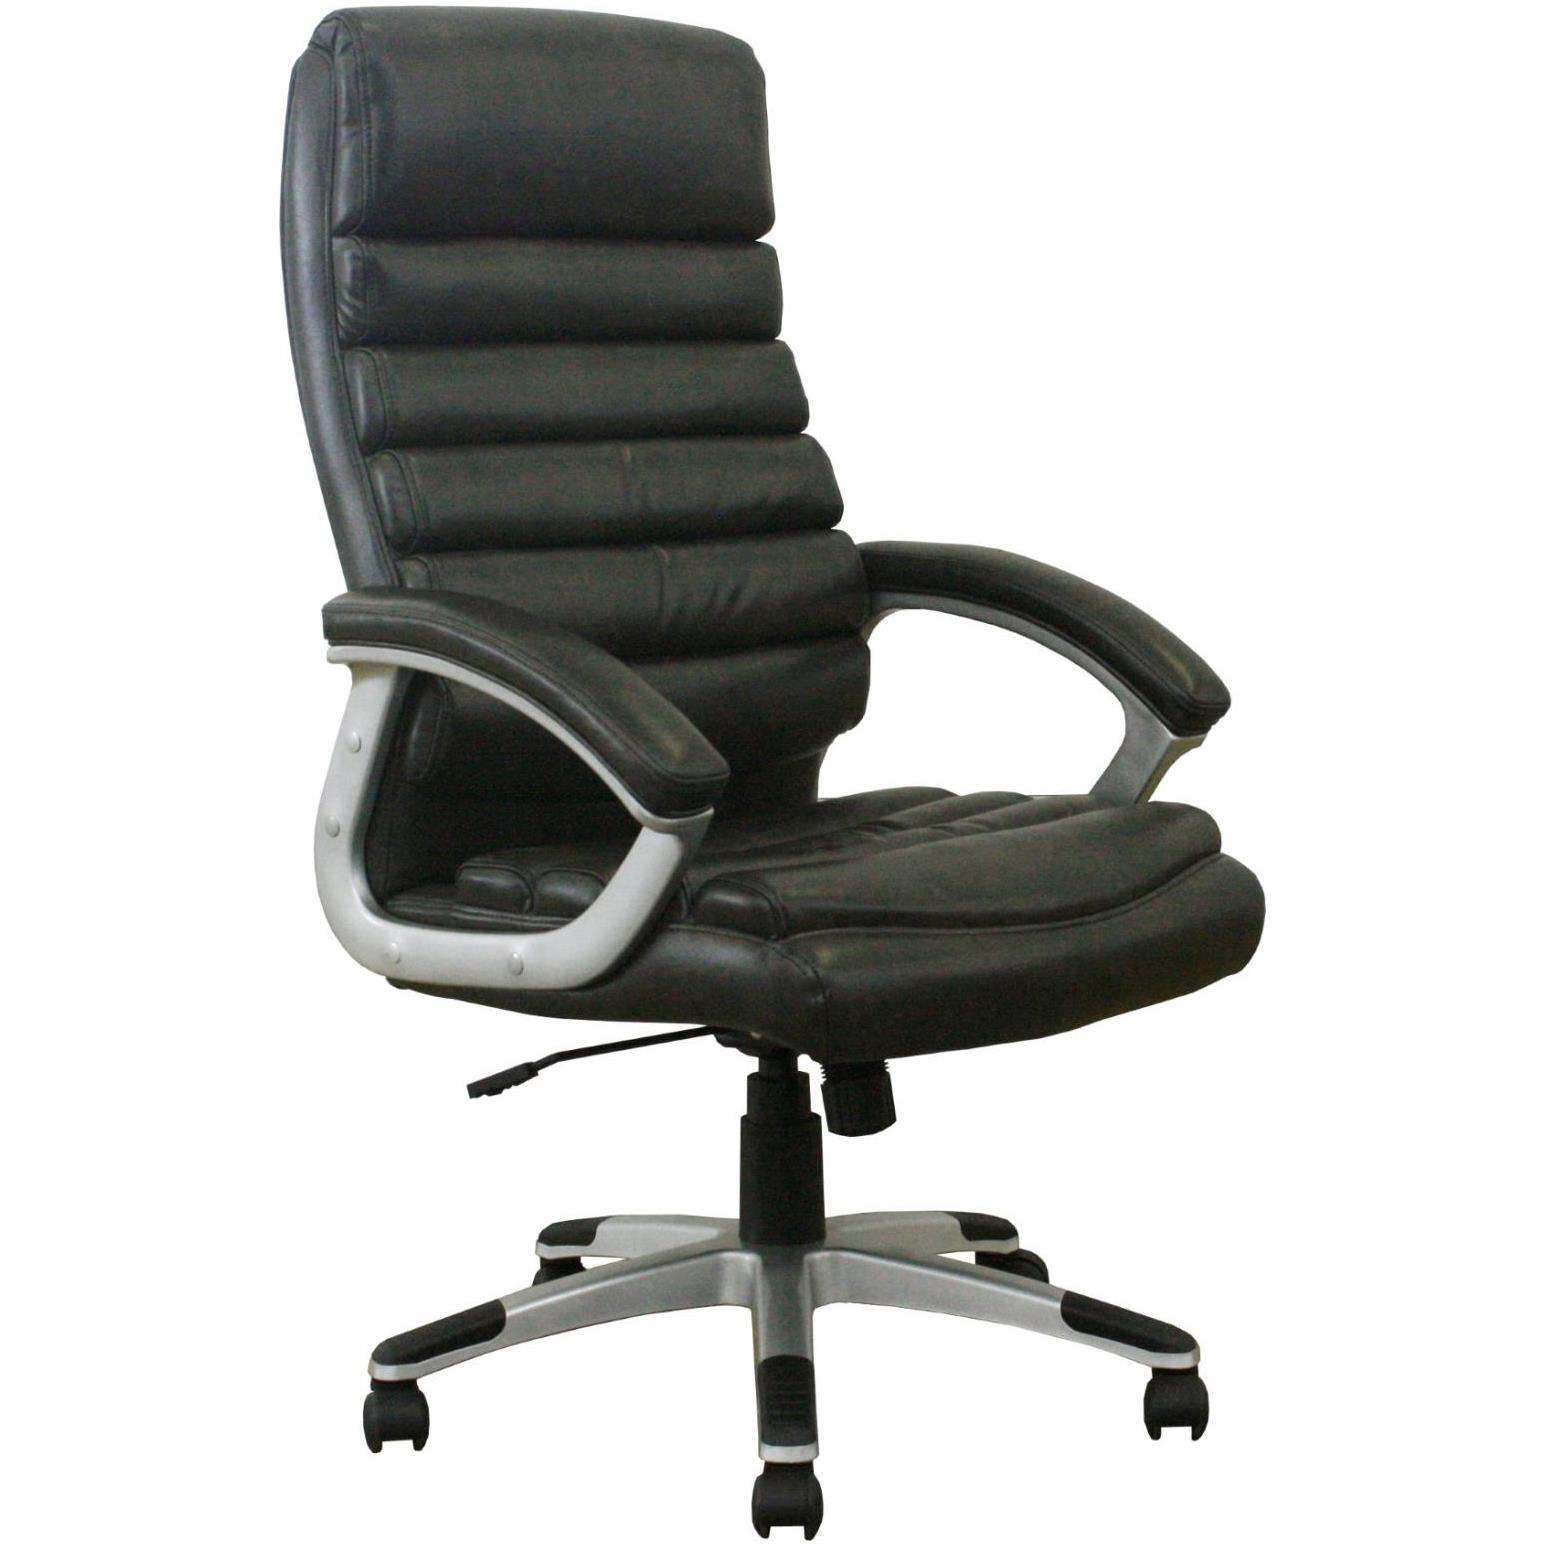 Parker Living Desk Chairs Desk Chair - Item Number: DC-200-EM